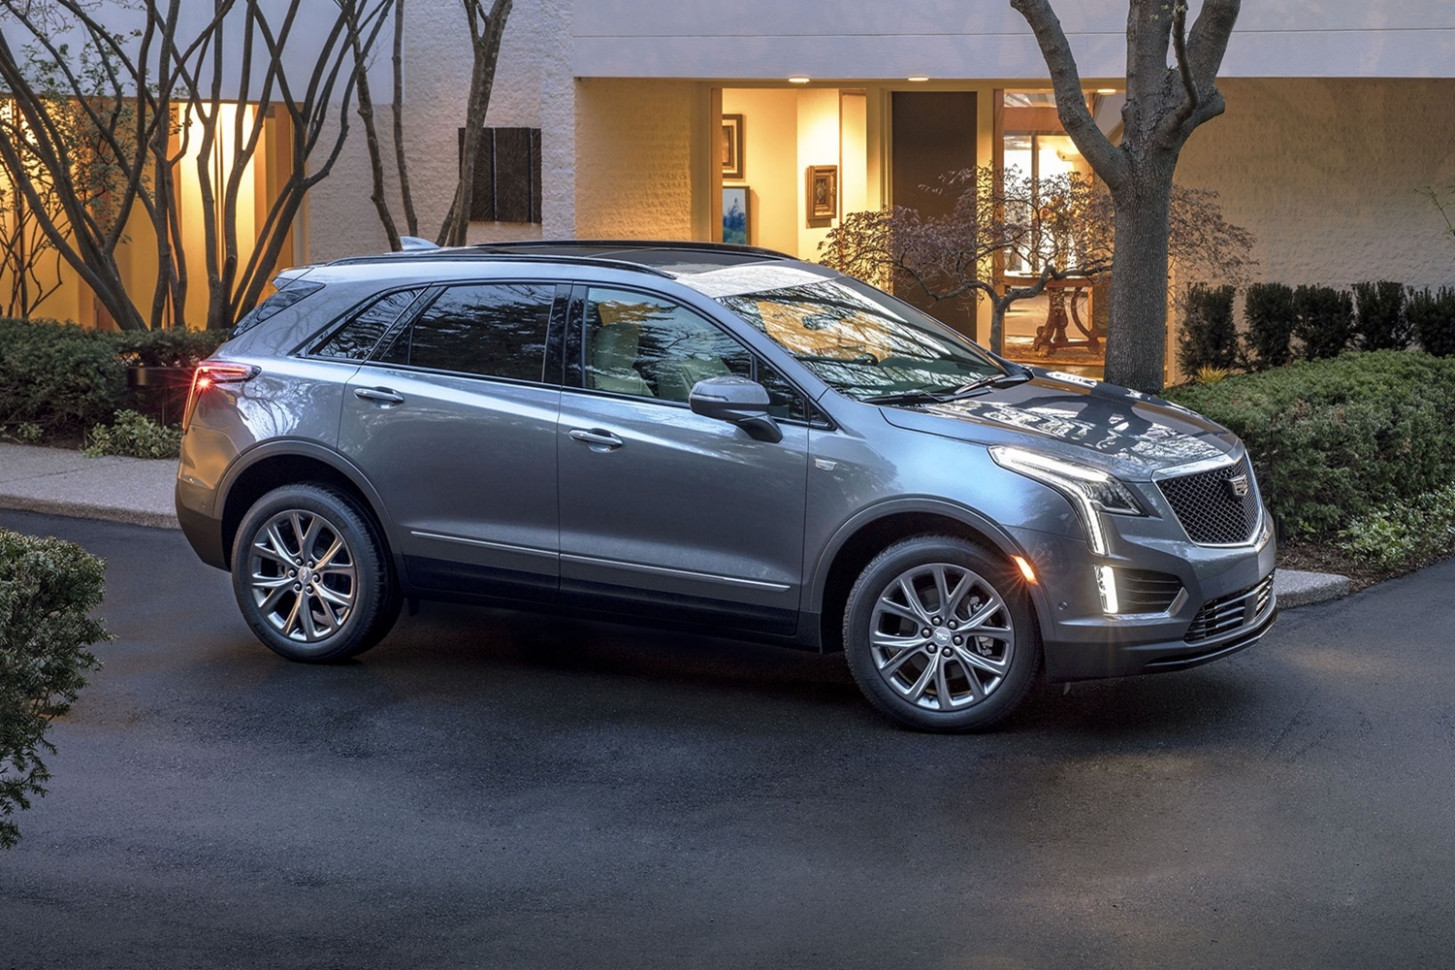 New Model and Performance When Will The 2022 Cadillac Xt5 Be Available